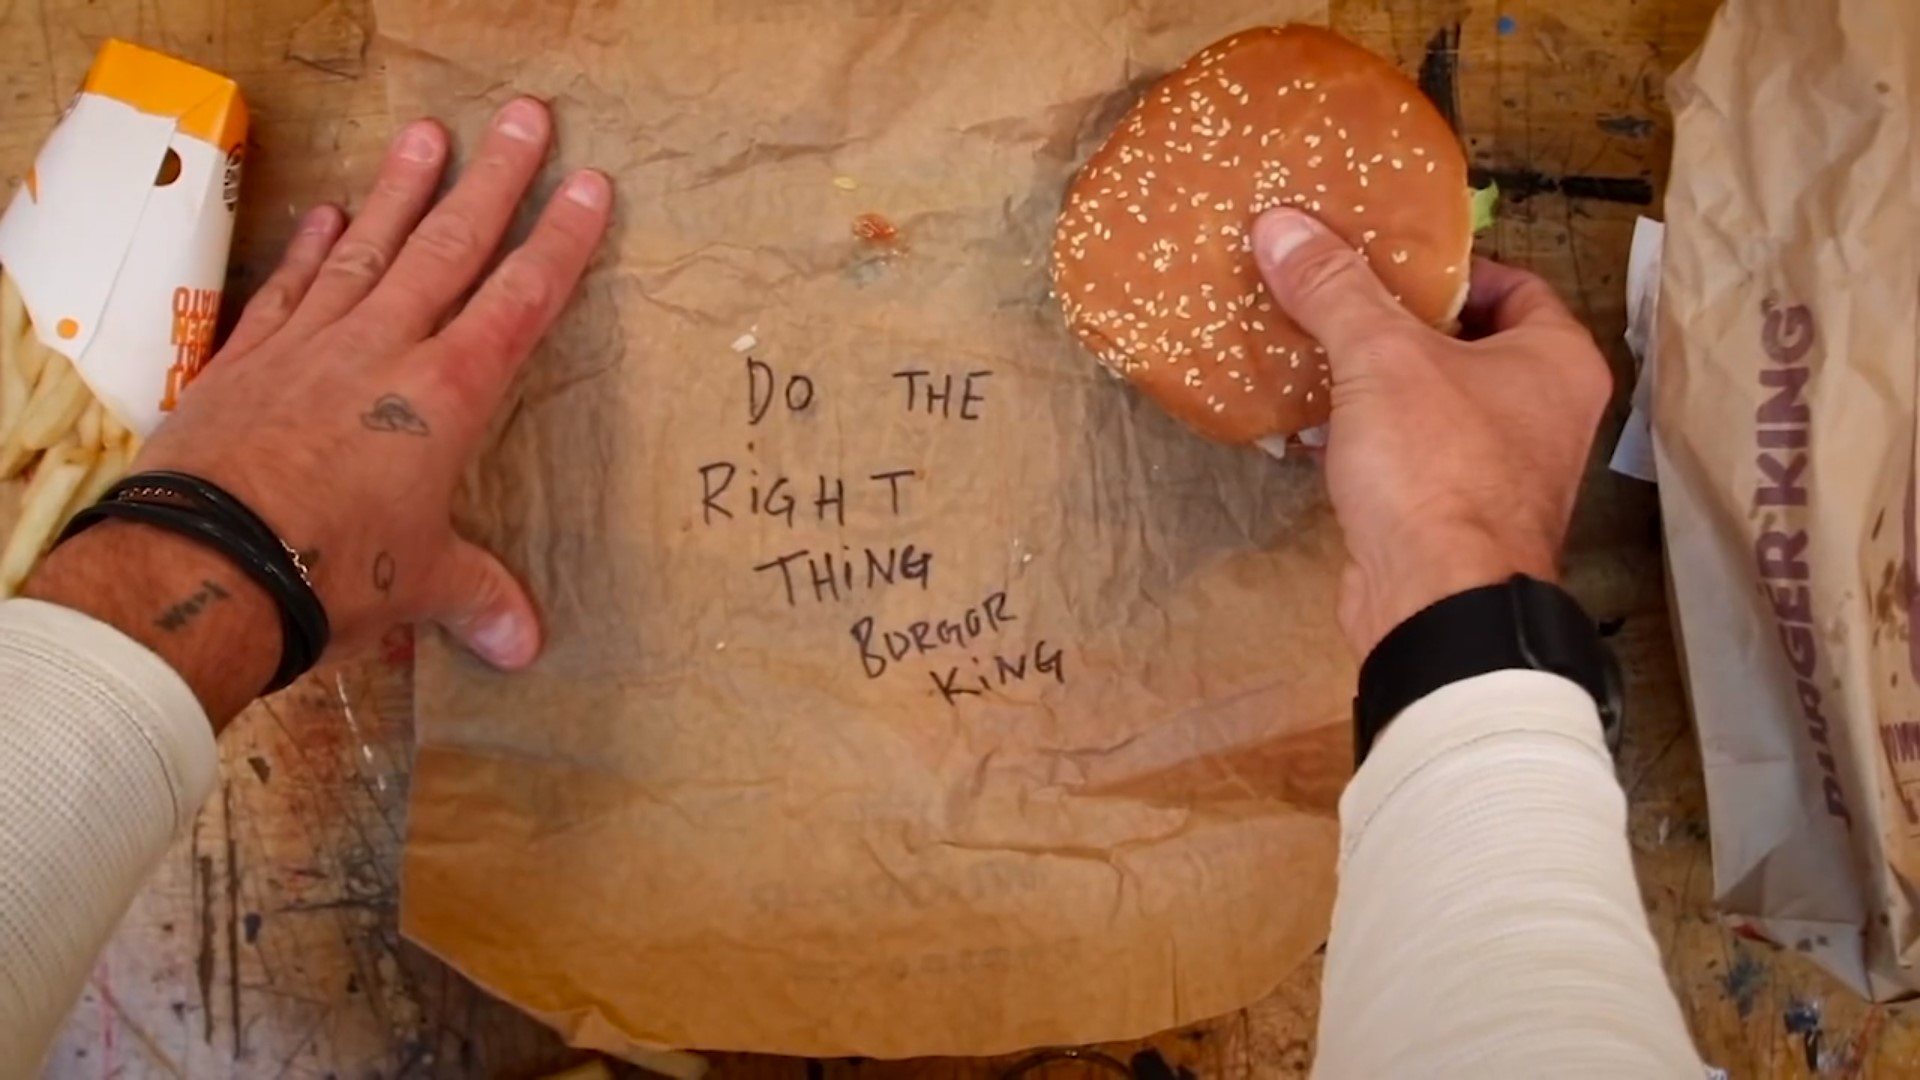 Do the right thing, written inside burger packaging